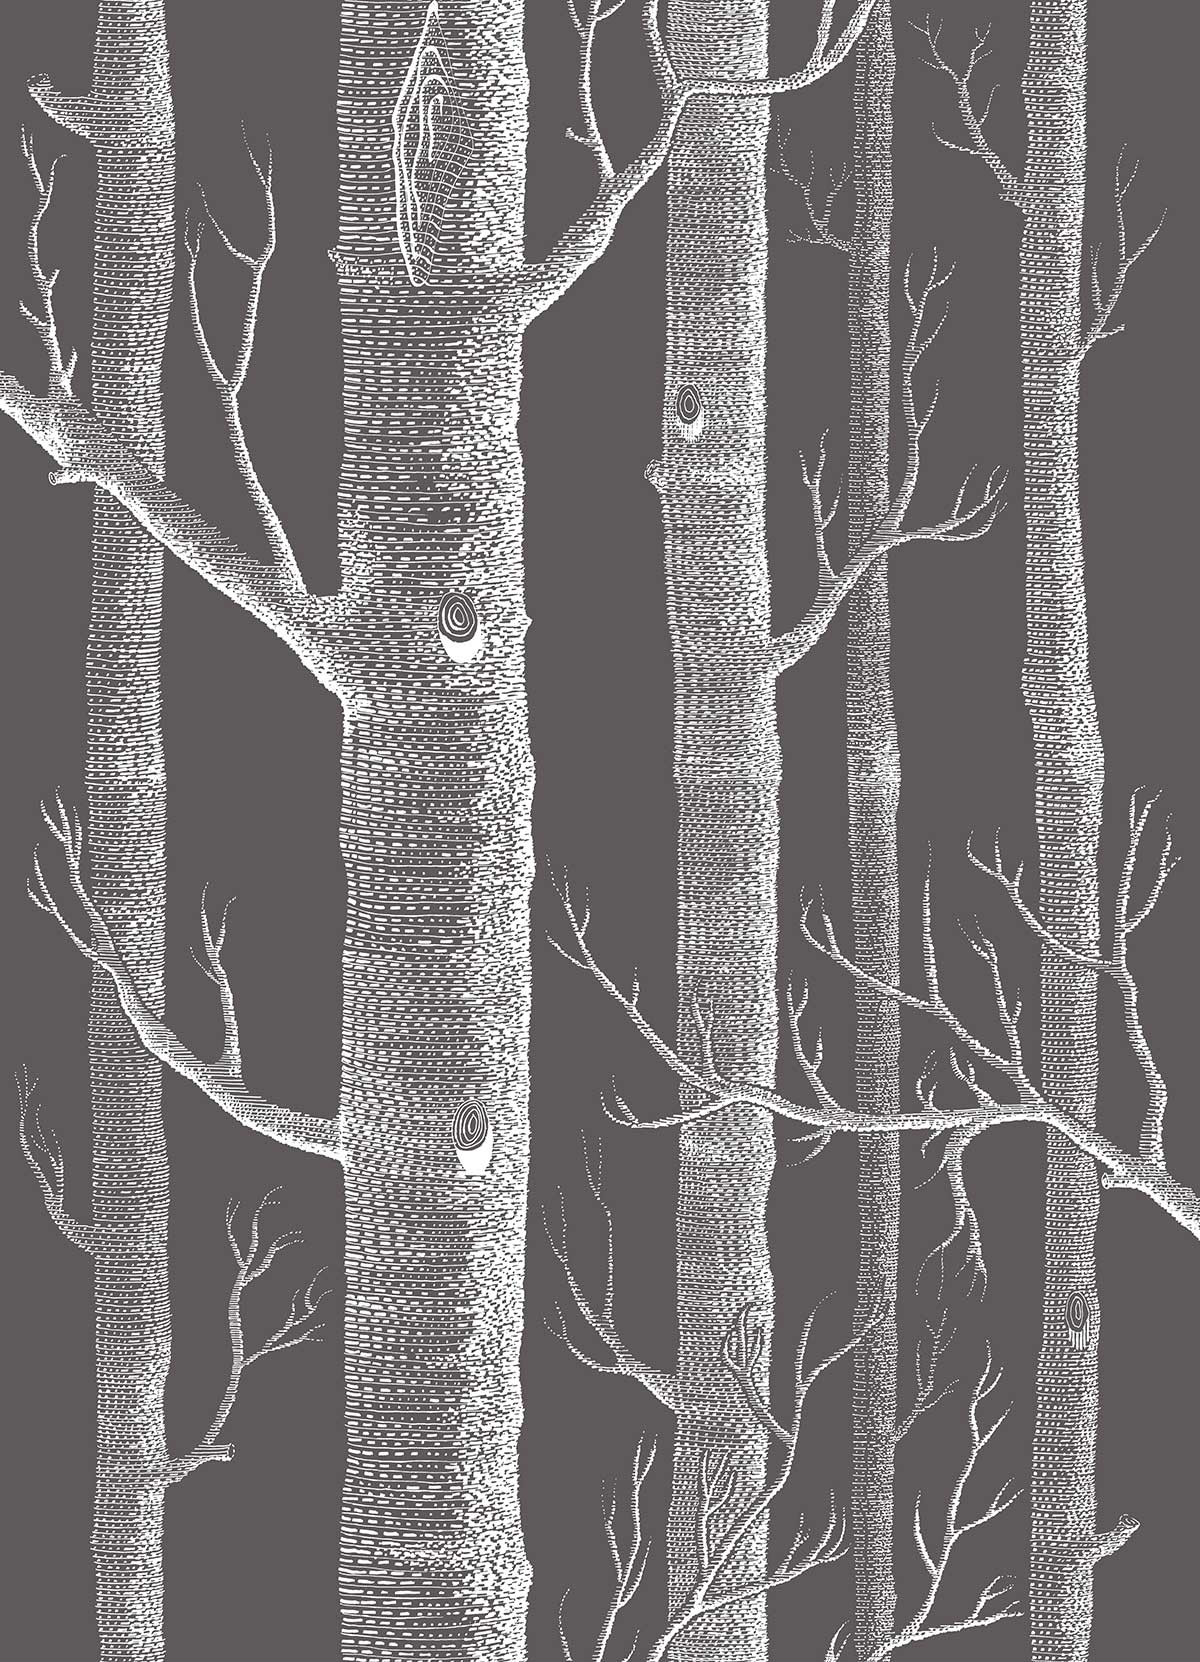 Cole & Son Woods Parchment on Charcoal Fabric - Product code: F111/7027LU